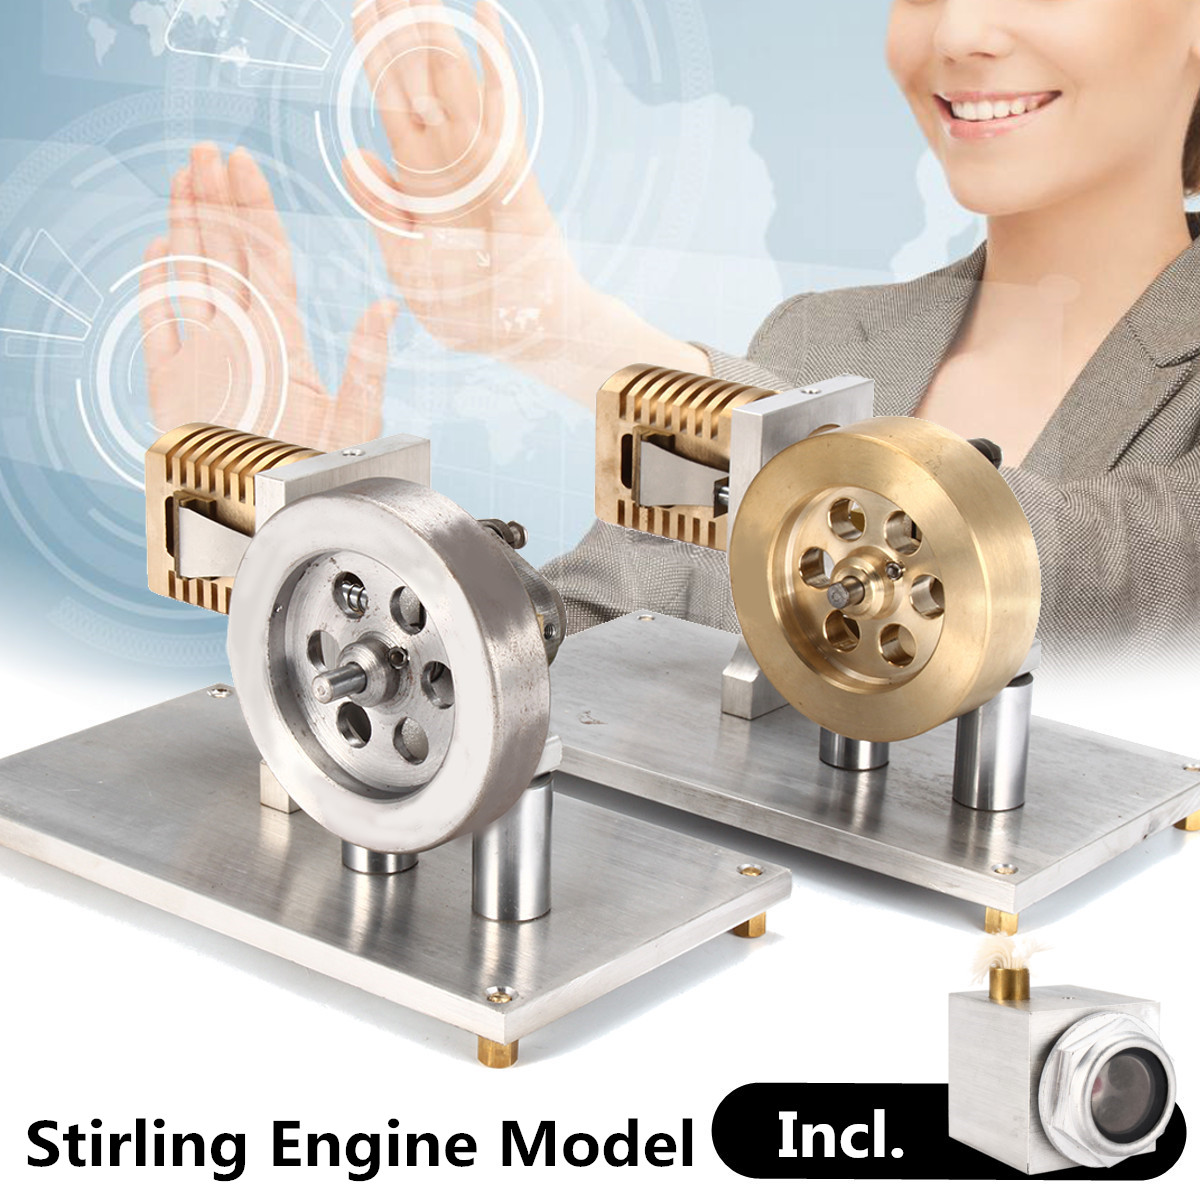 Metal Model Hot Air Stirling Steam Engine Building Kits Flame Lick Vacuum Motor Model Toy School Lab Educational Toys Gifts